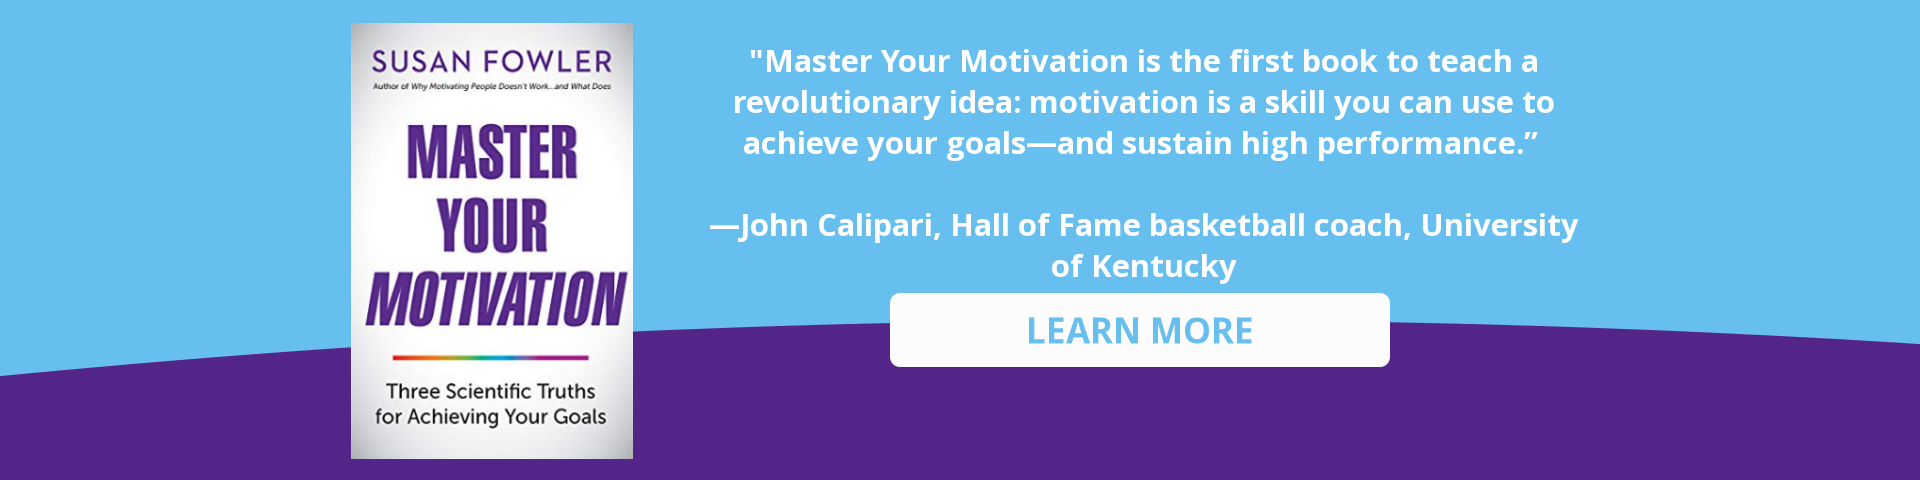 Master Your Motivation by Susan Fowler